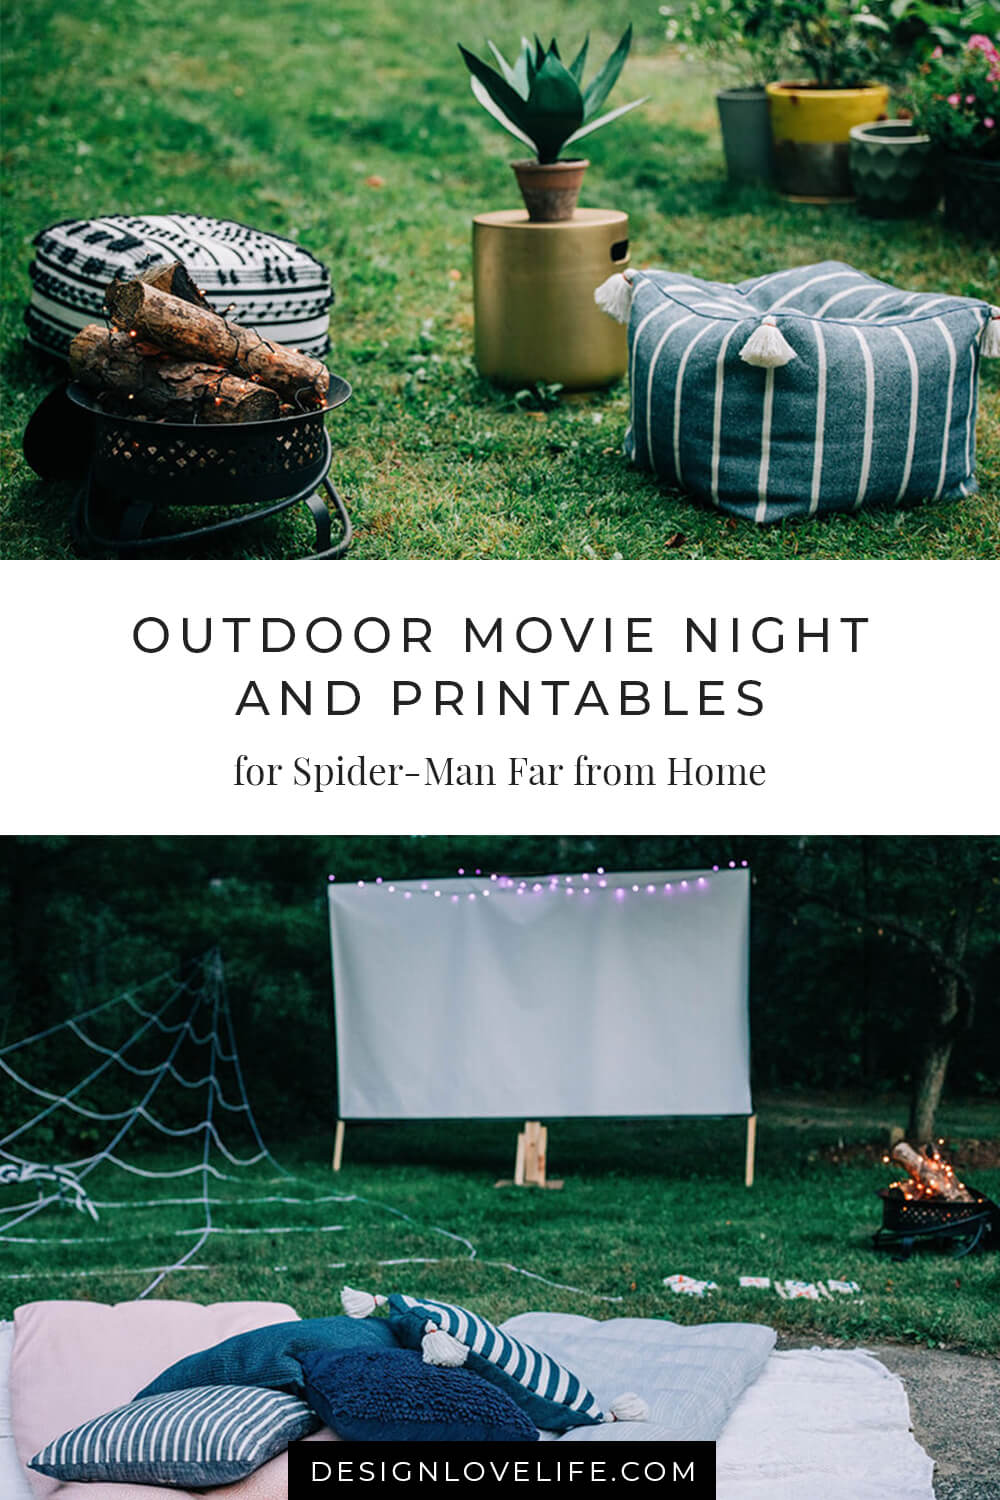 Outdoor Spider-Man: Far From Home Movie Night. Outdoor Movie Night with Printables for a Spider-Man themed party. Annie Johnson - Design Love Life